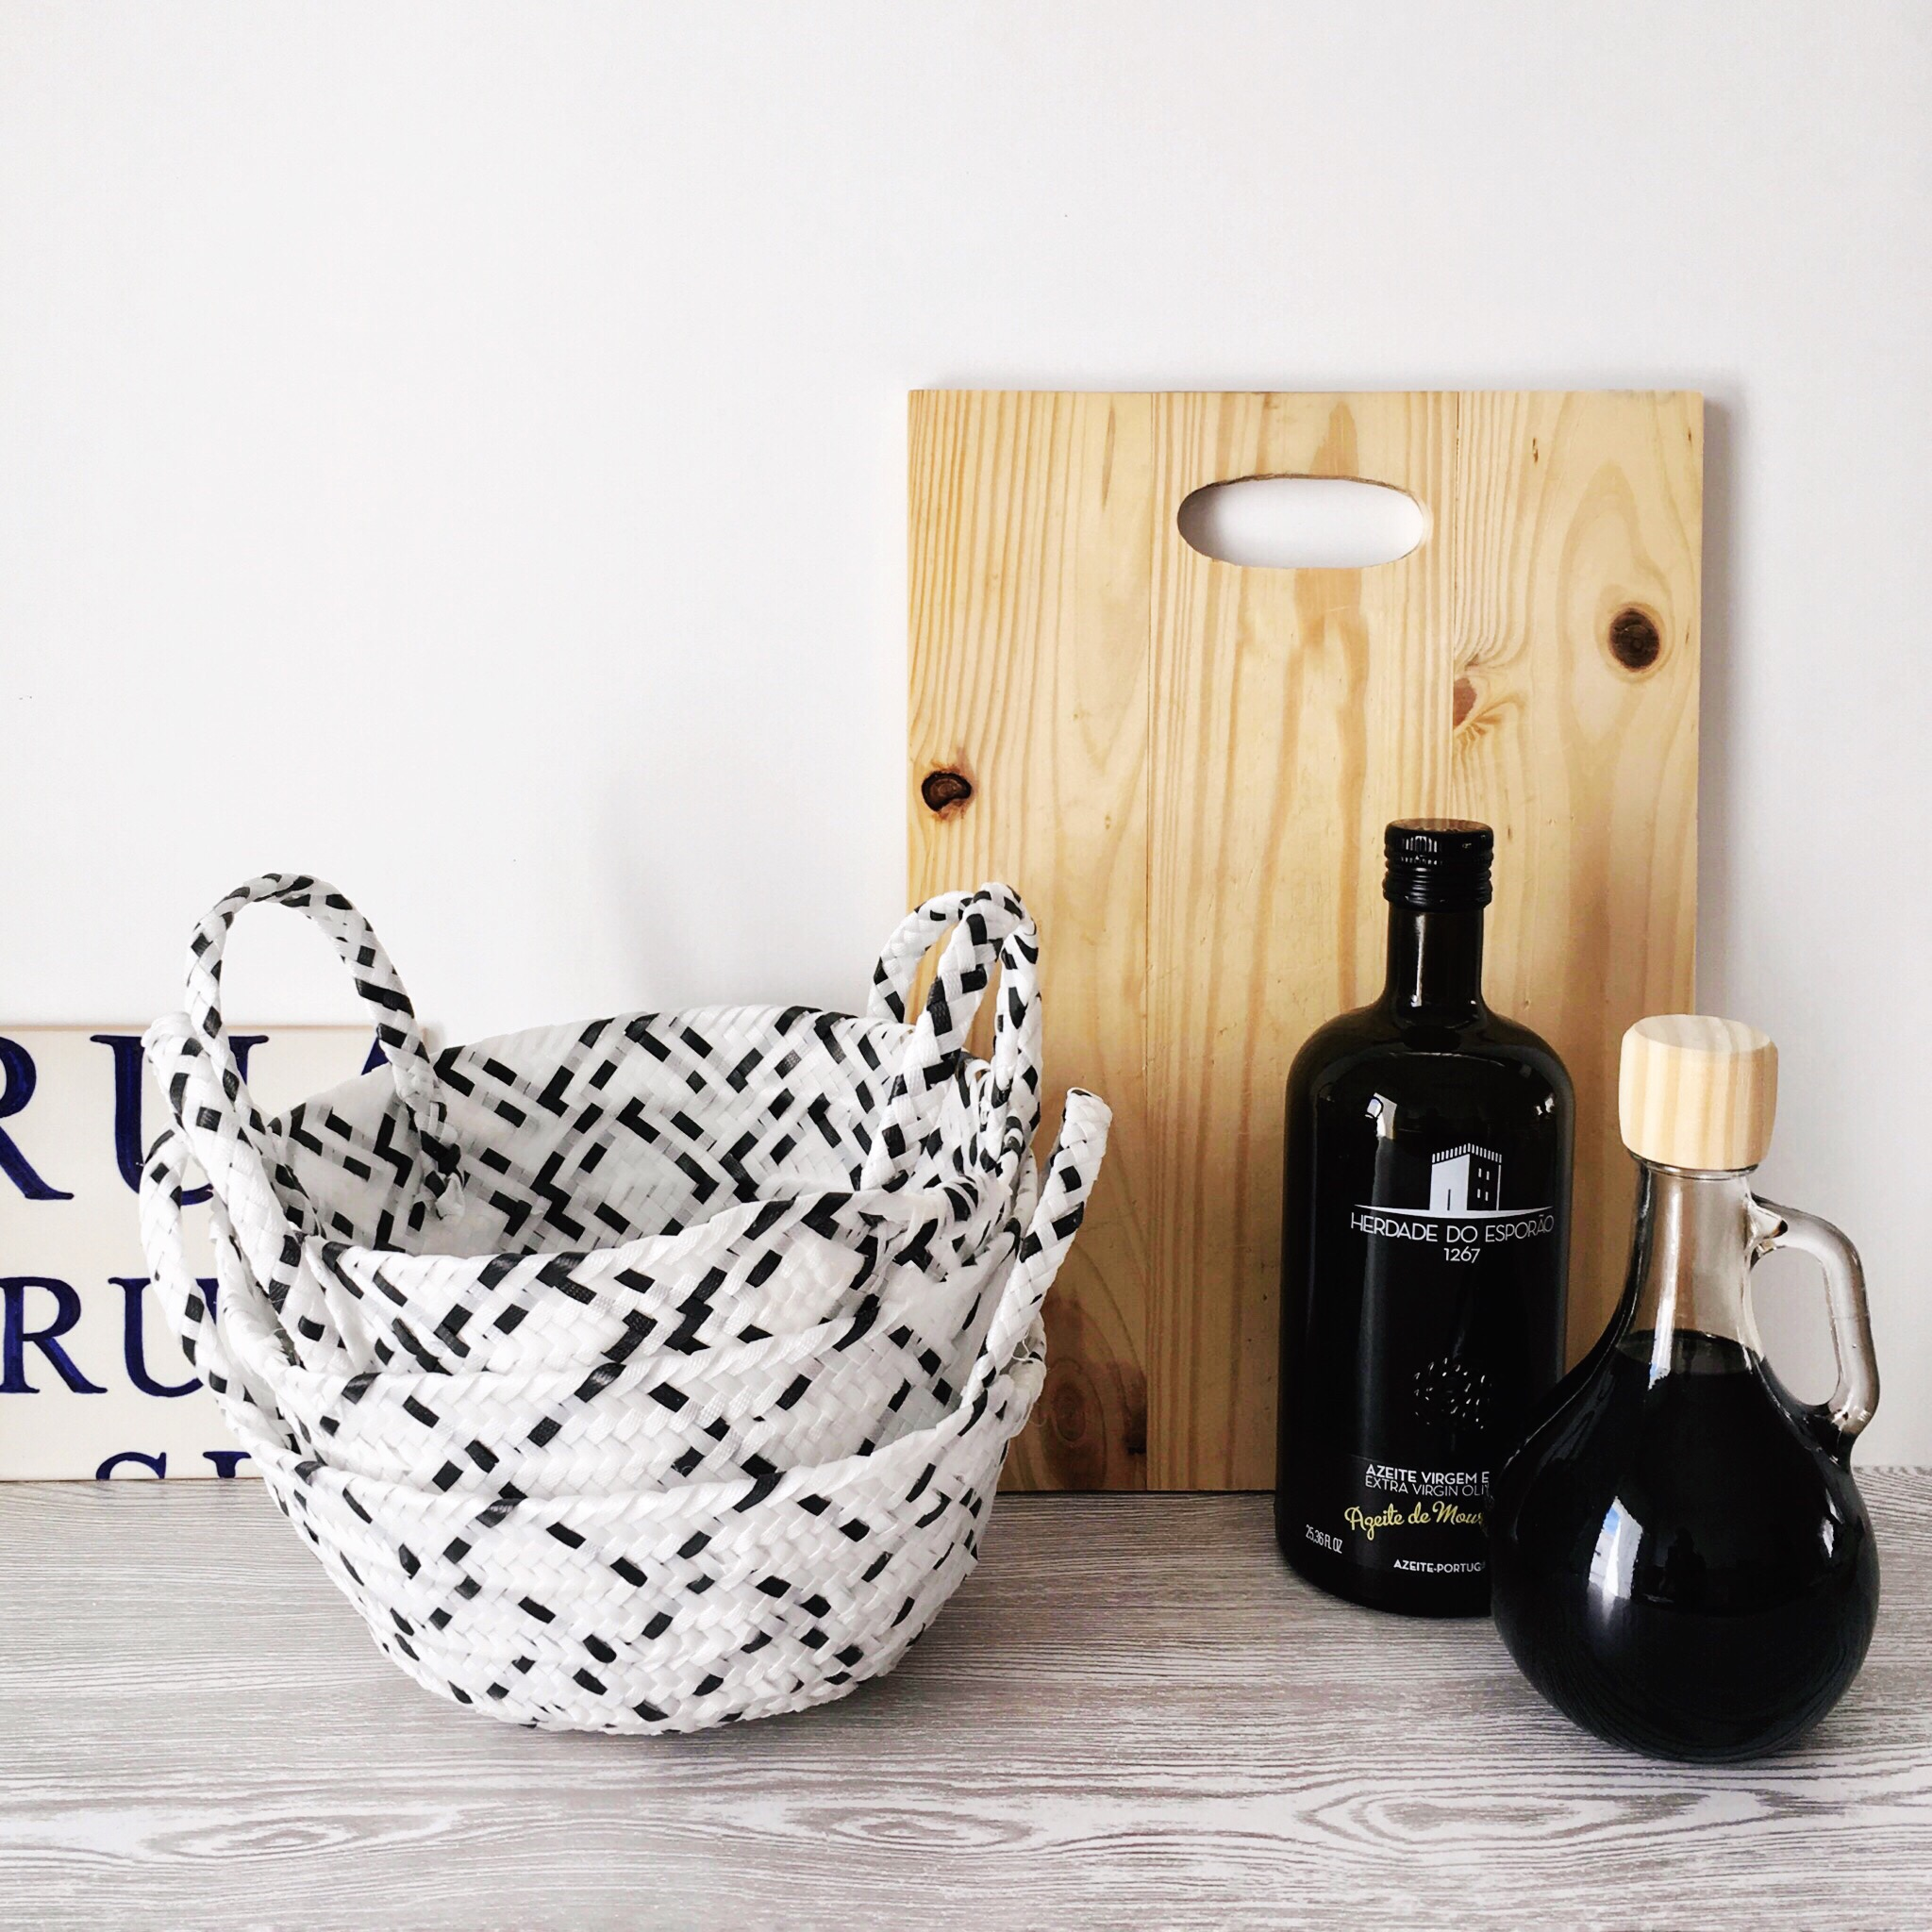 casa-cubista-black-and-white-baskets